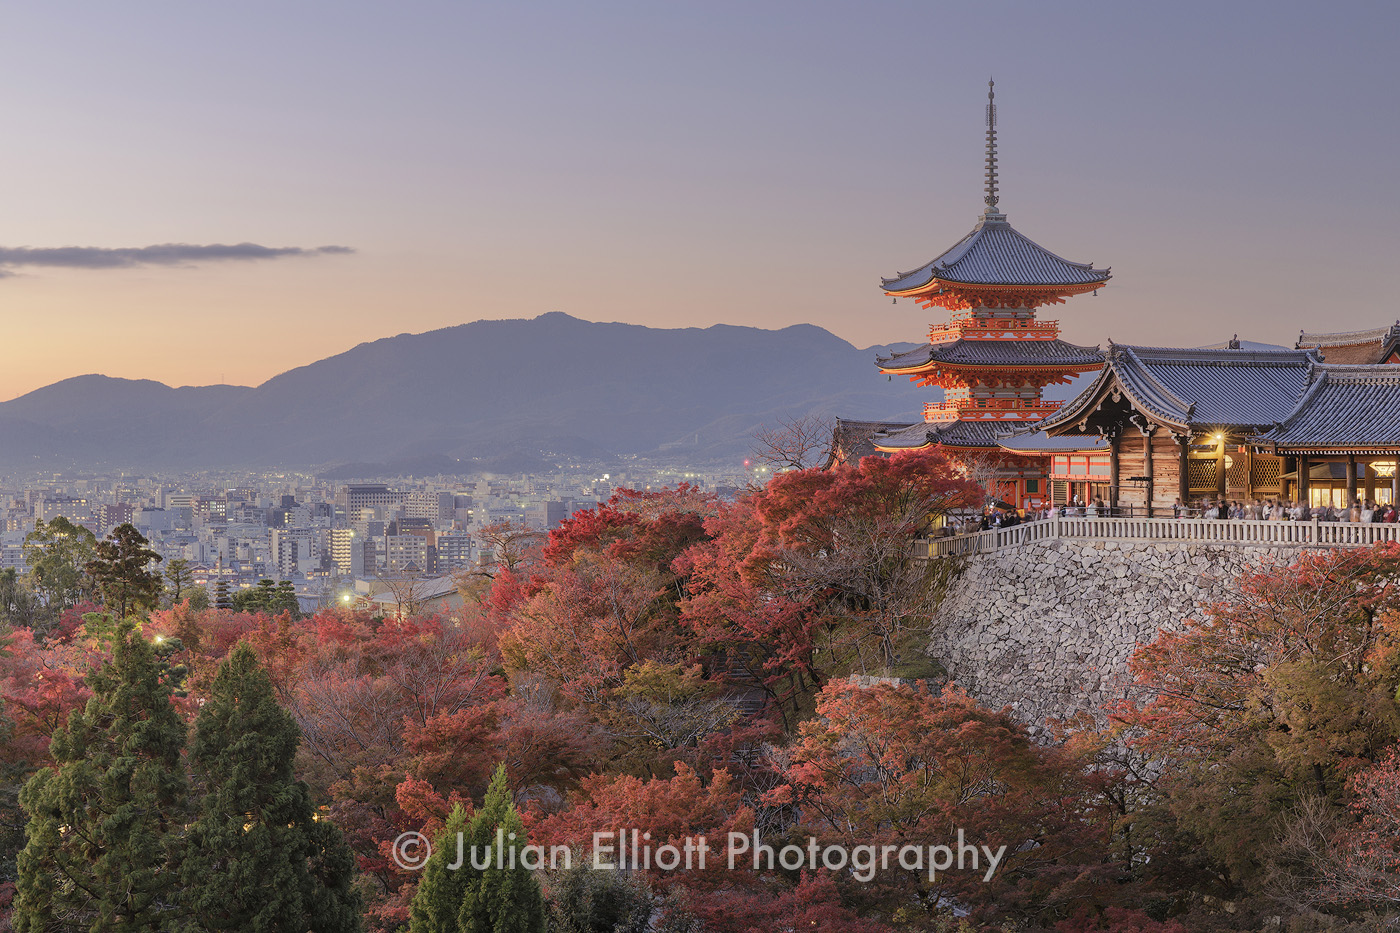 Autumn color at Kiyomizu-dera temple in Kyoto